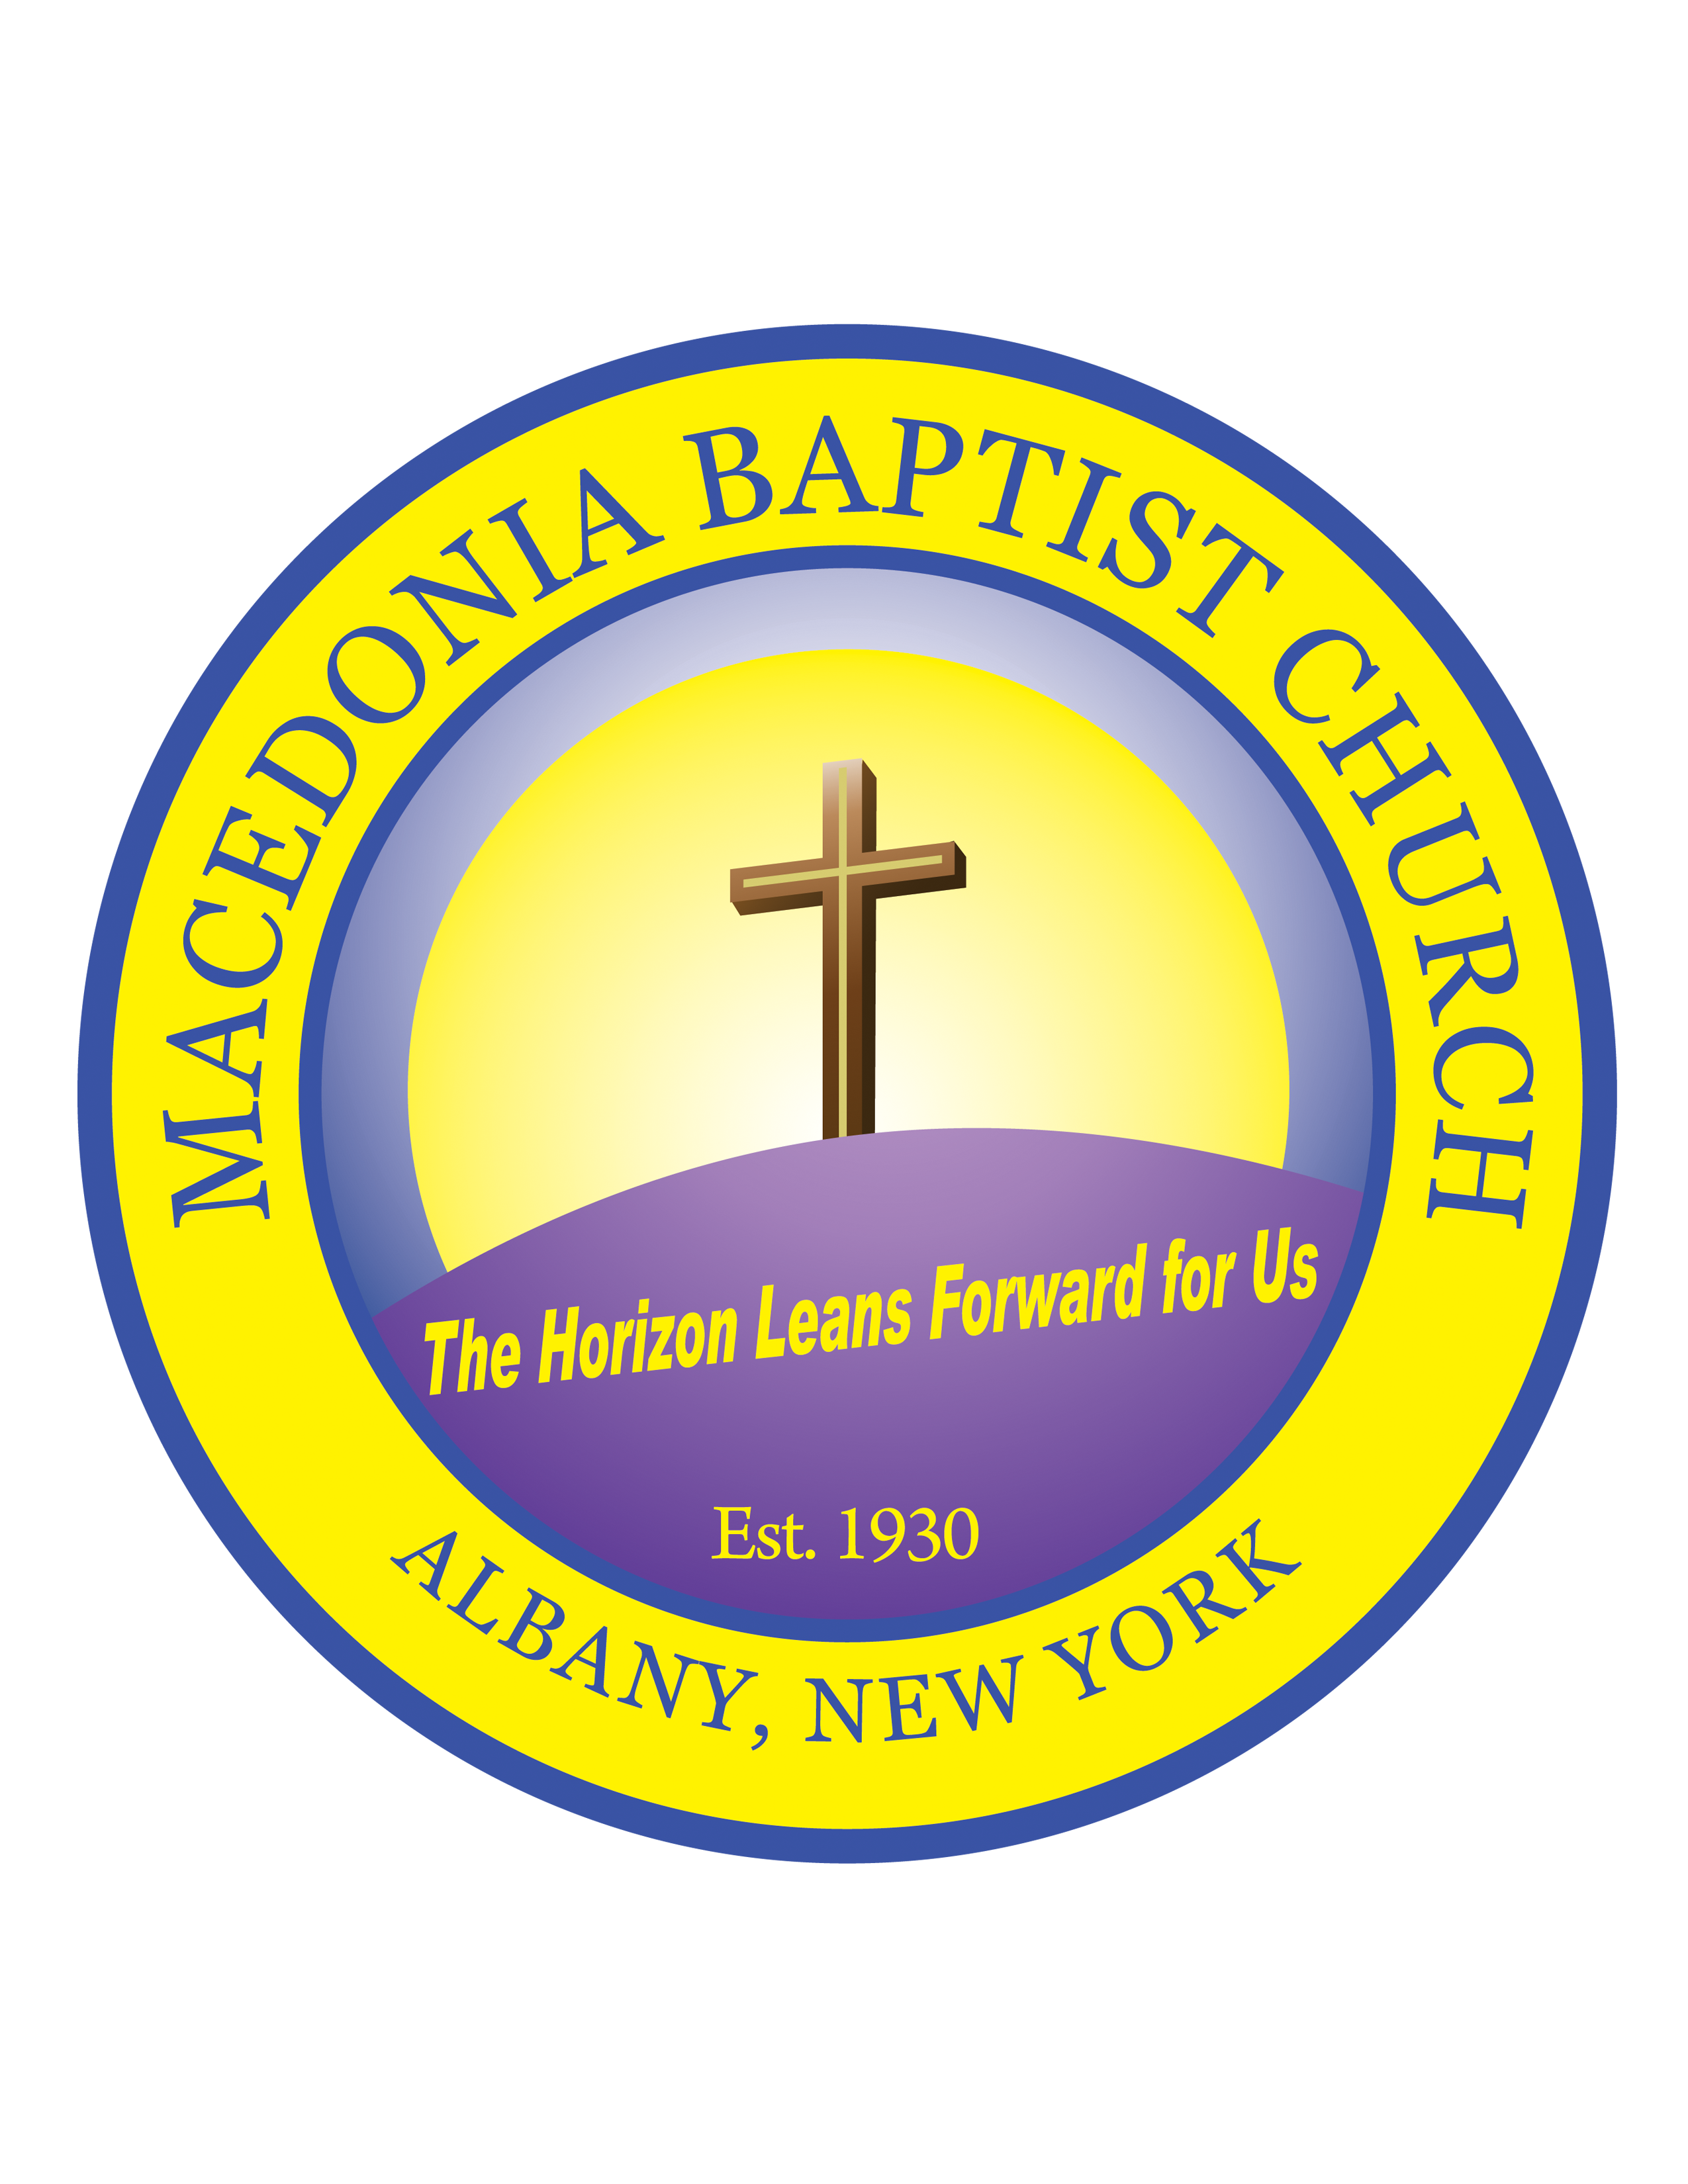 Macedonia Baptist Church NY